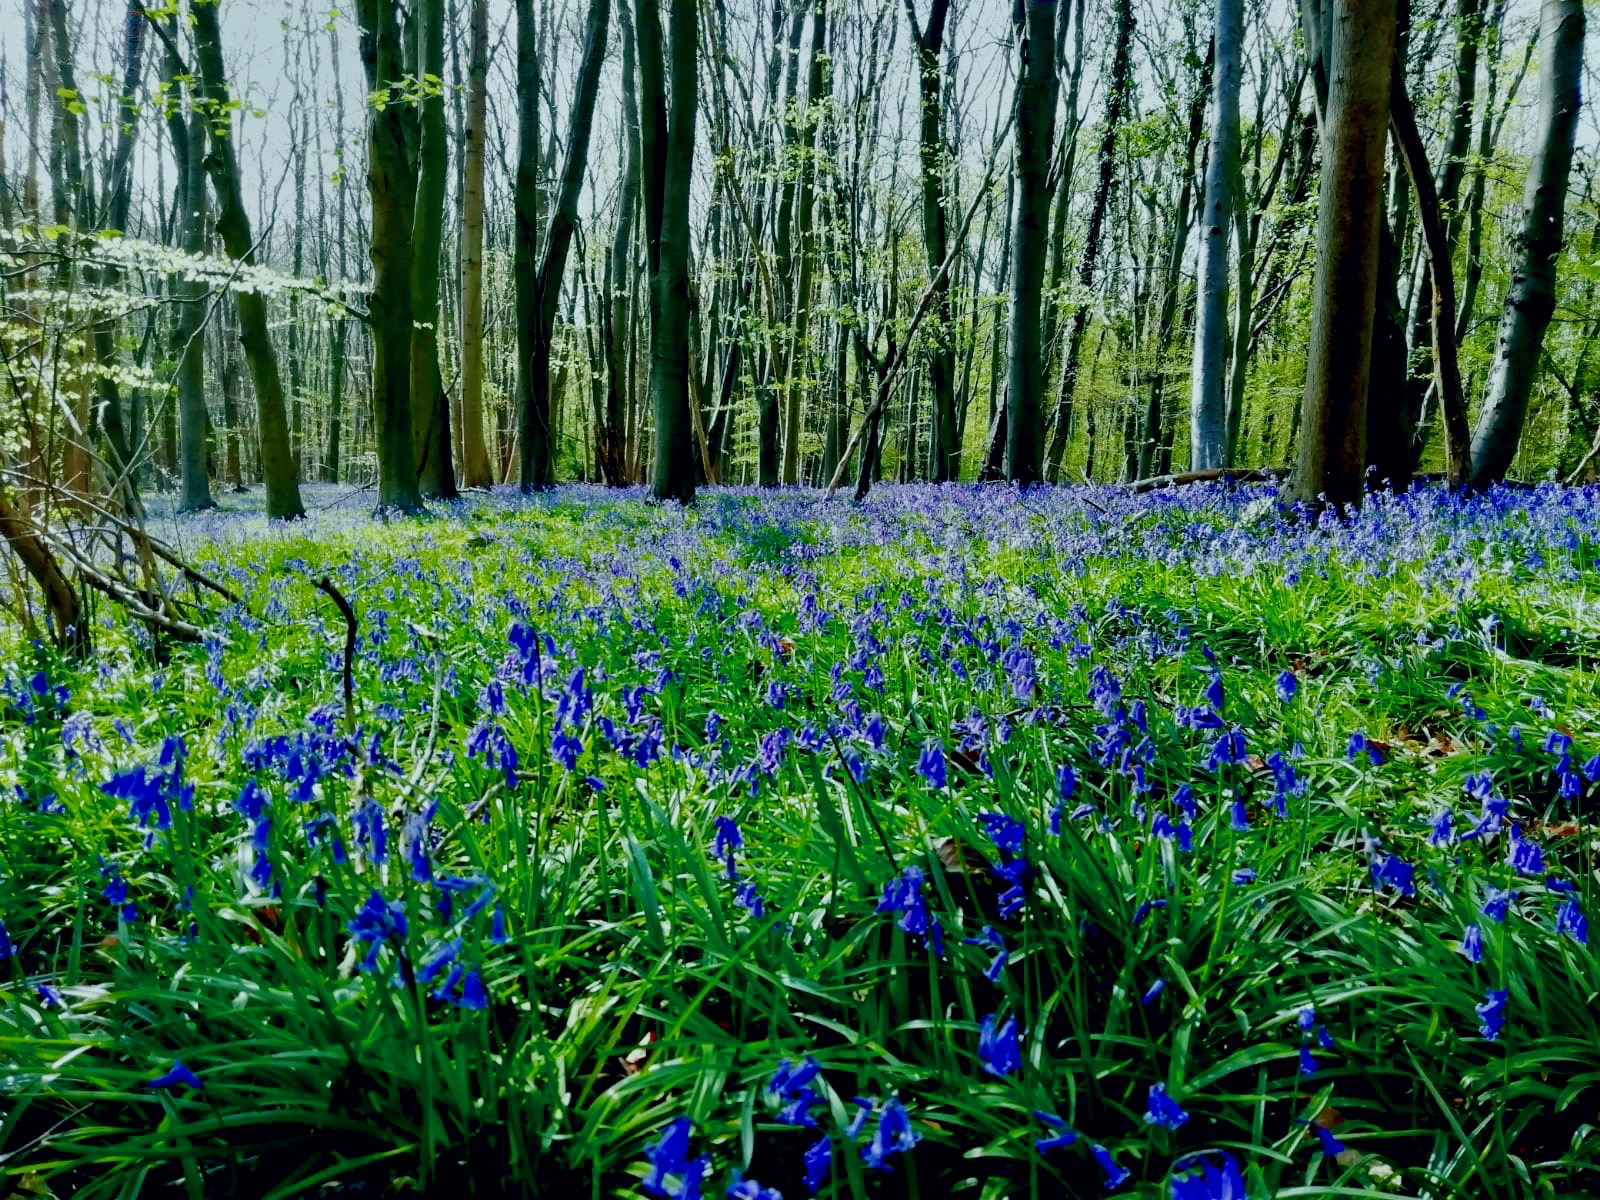 Bluebell Forest in full bloom